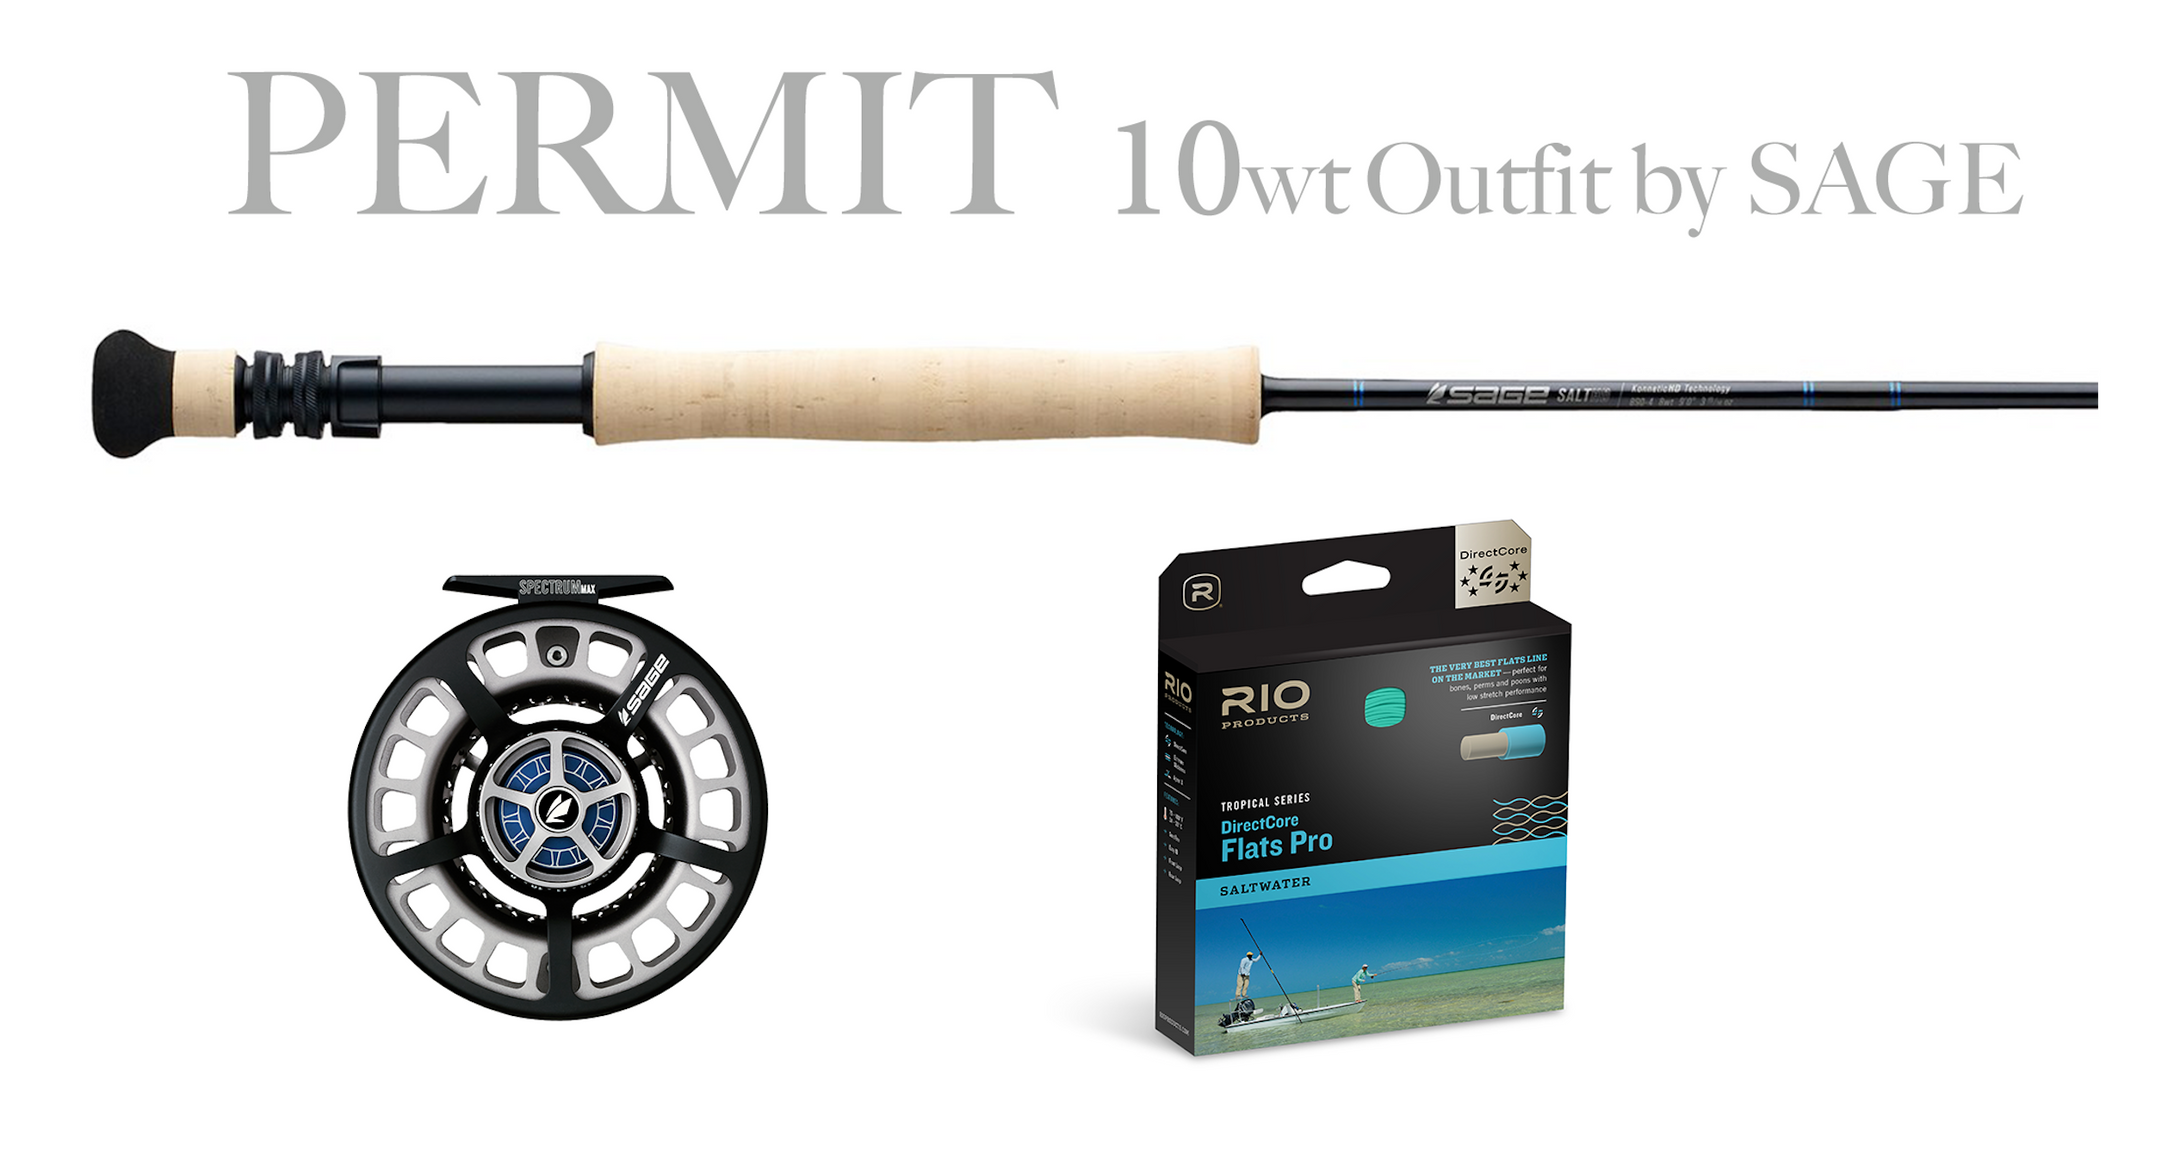 Sage PERMIT Combo 10wt - SALT HD Fly Rod 10wt + Spectrum MAX Reel (9/10)